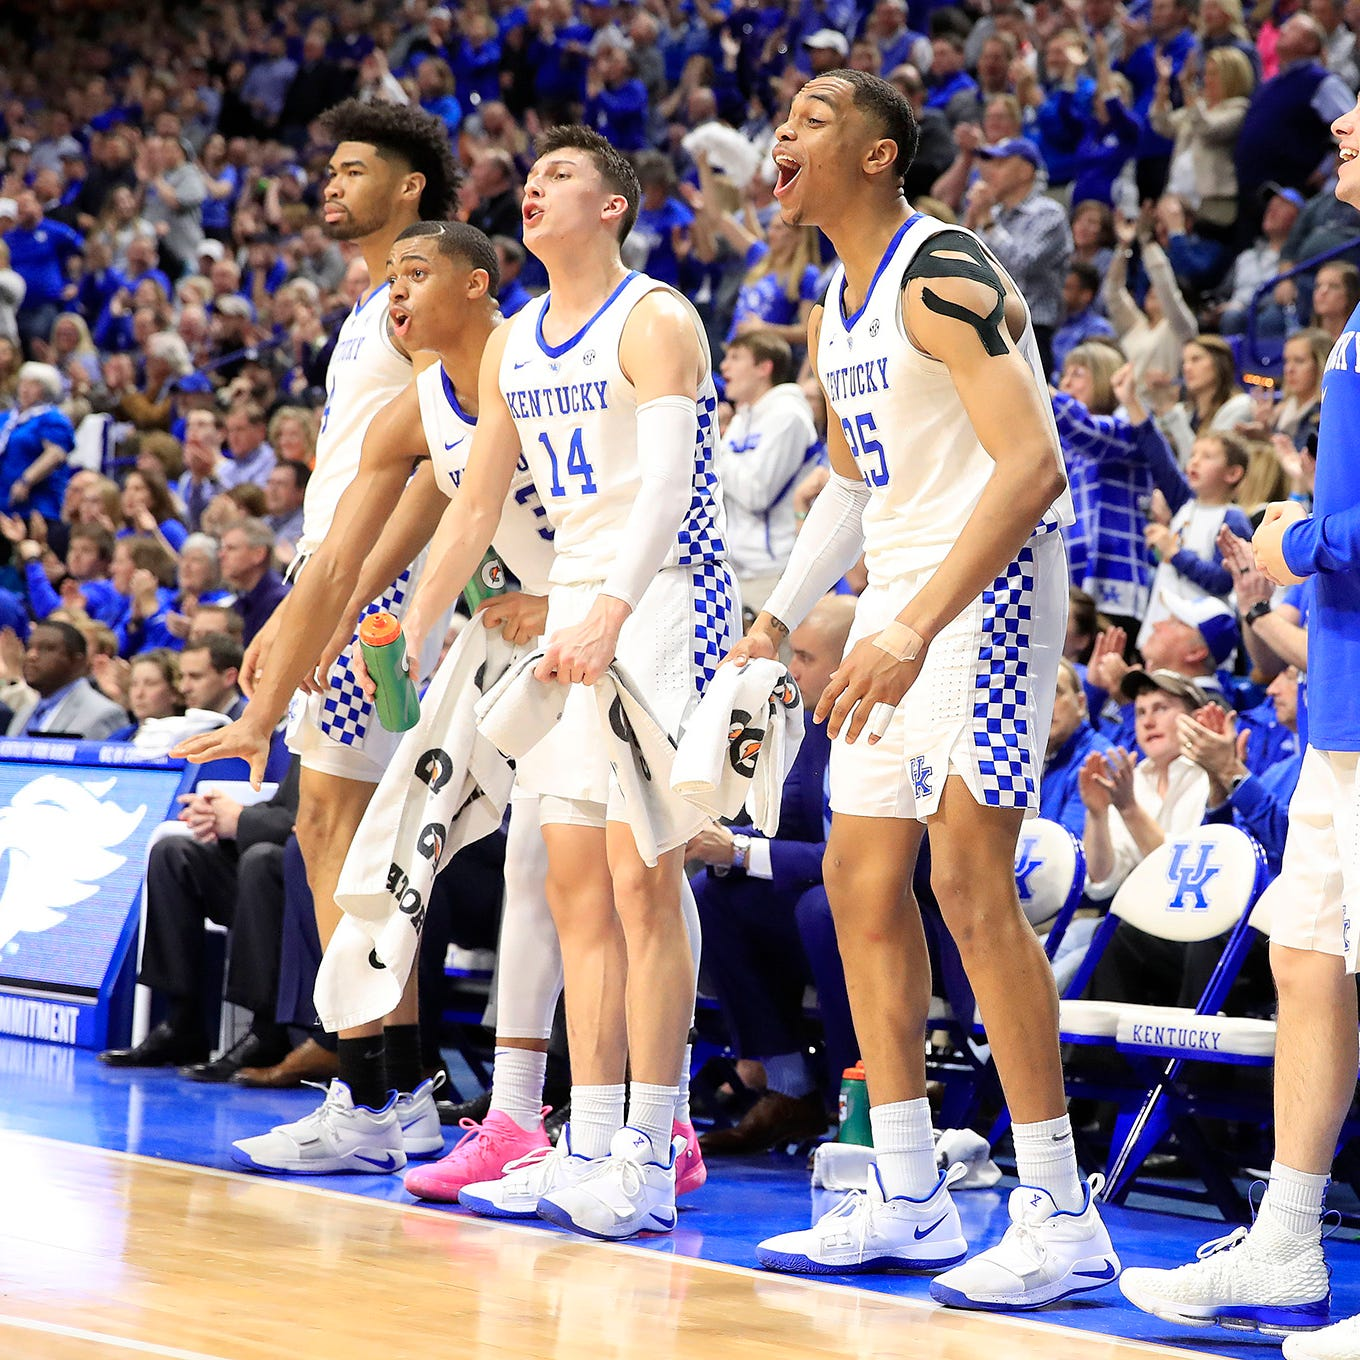 Saturday's Top 25: No. 5 Kentucky upsets No. 1 Tennessee